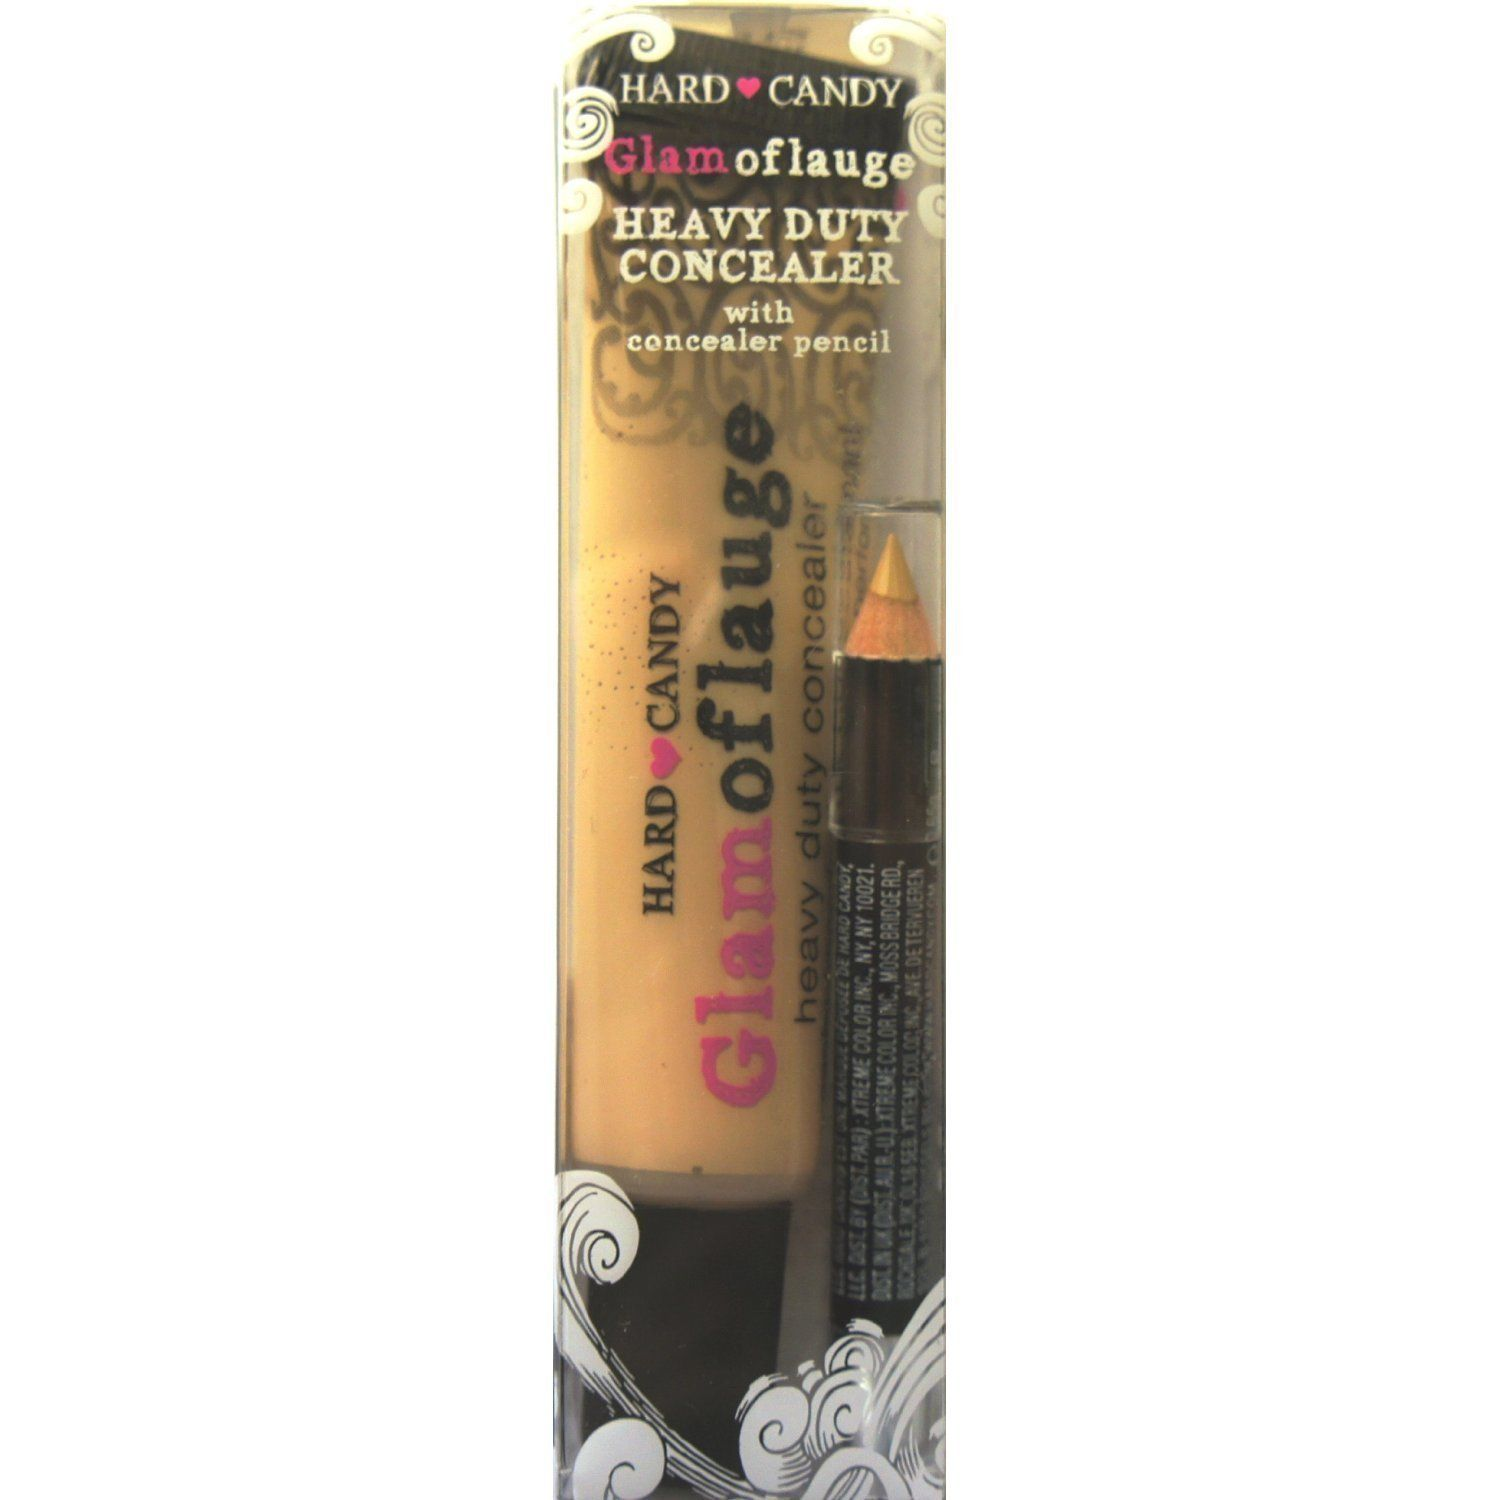 Hard Candy Glamoflauge HEAVY DUTY CONCEALER with pencil (LIGHT ...